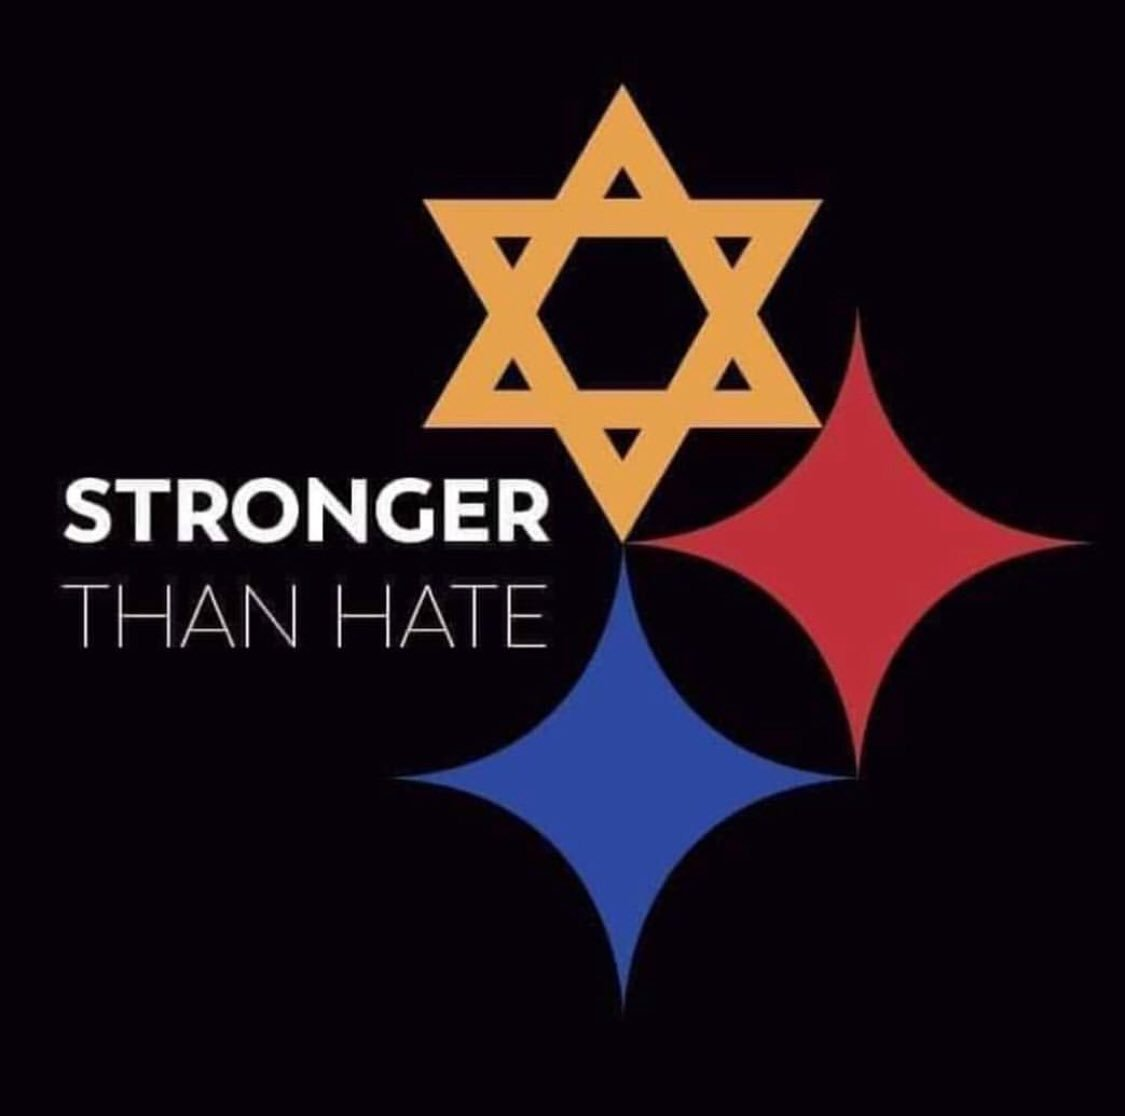 #PittsburghStrong